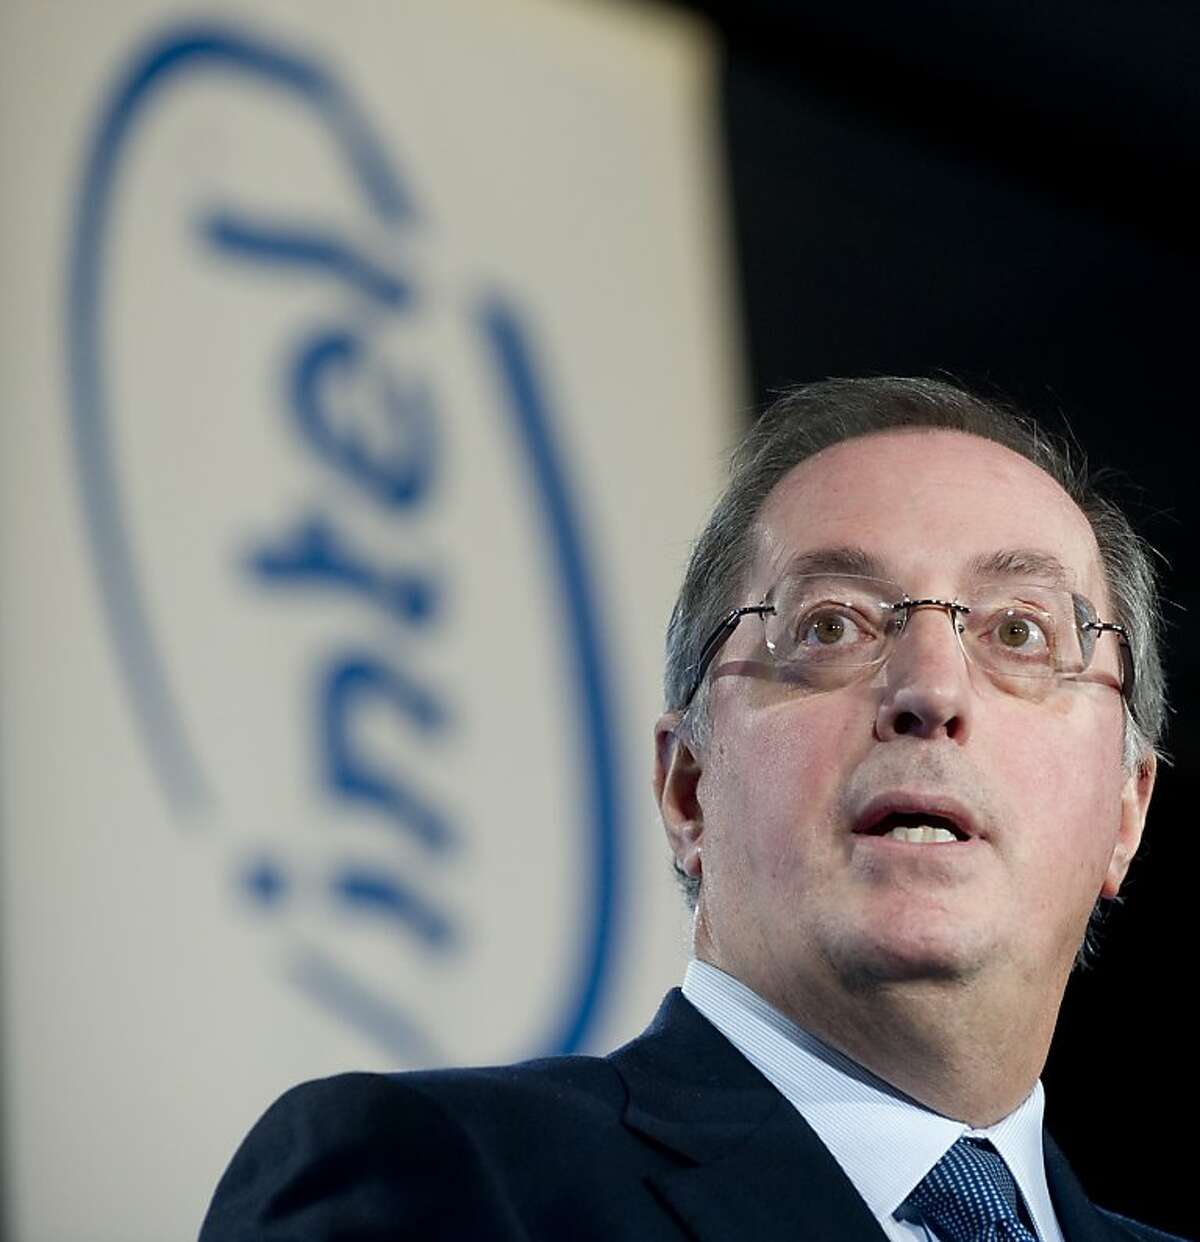 (FILES)Intel CEO Paul Otellini introduces US President Barack Obama before he speaks about advancing education for US students to compete on the international stage after touring a manufacturing facility at Intel in Hillsboro, Oregon, in this February 18, 2011 file photo. Intel Corp. announced November 19, 2012 that Otellini would retire in May, and that a search for a new CEO was underway. AFP PHOTO / Saul LOEB / FILESSAUL LOEB/AFP/Getty Images